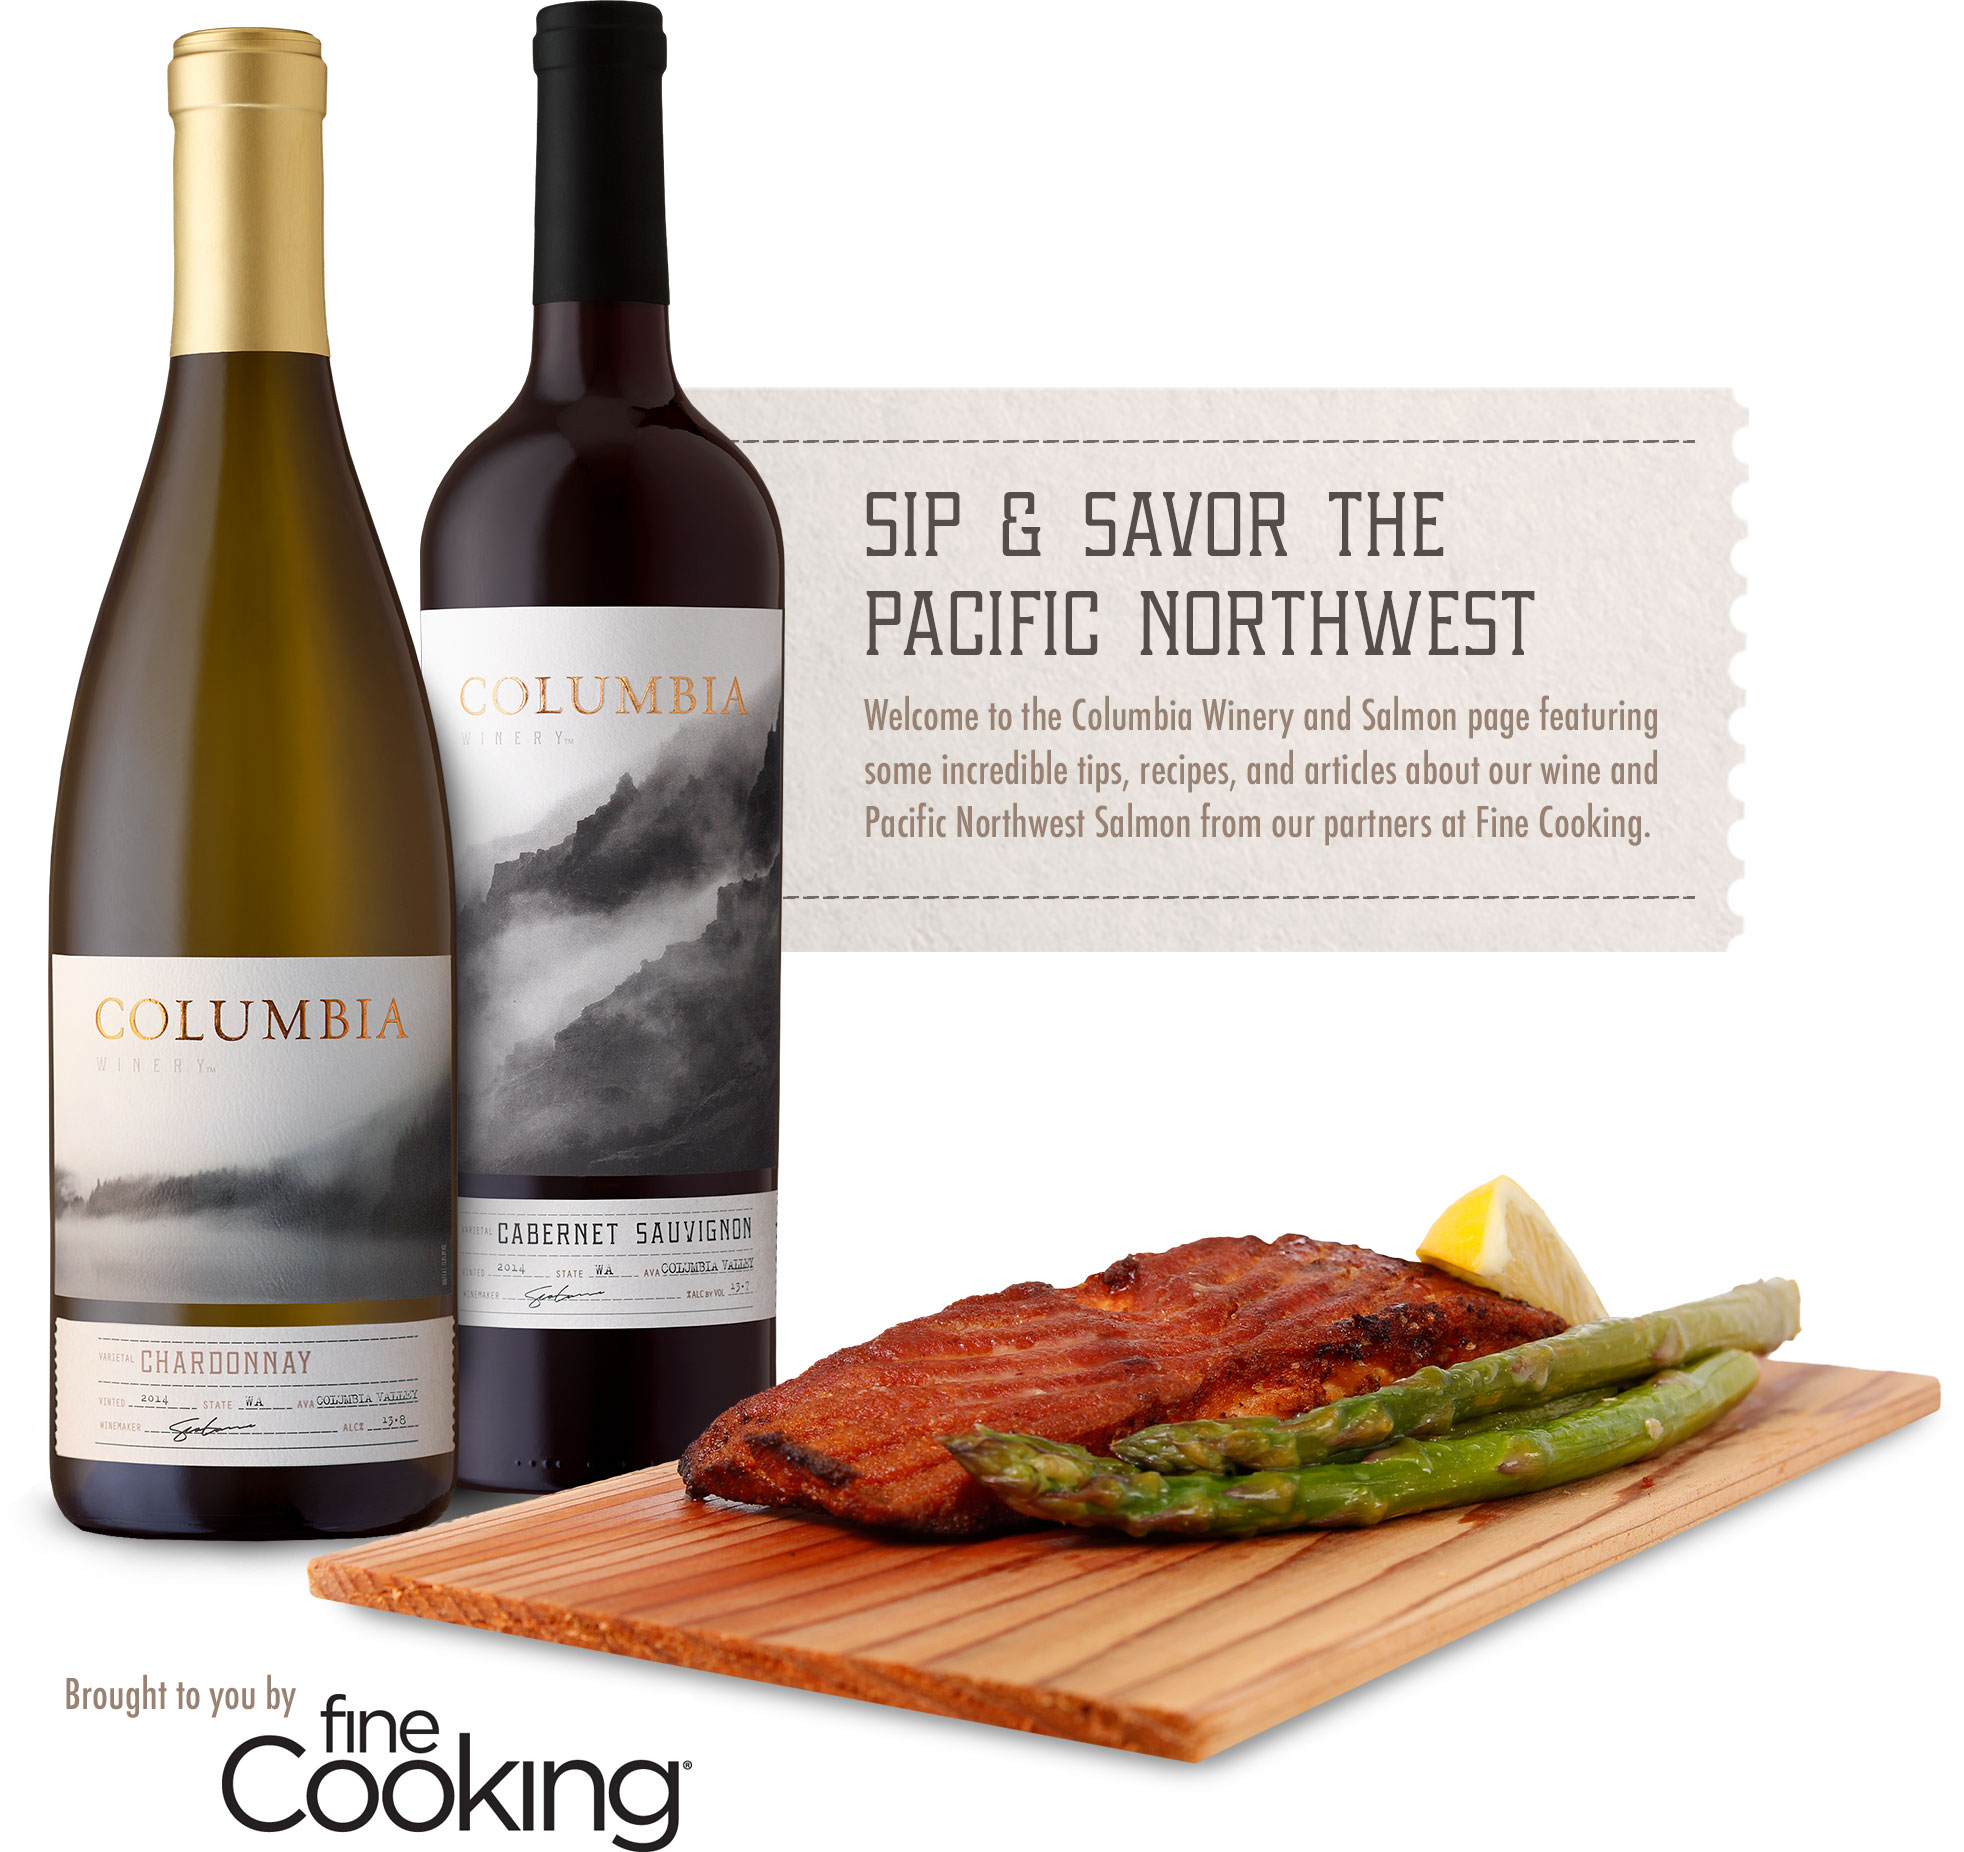 Sip & Savor the Pacific Northwest